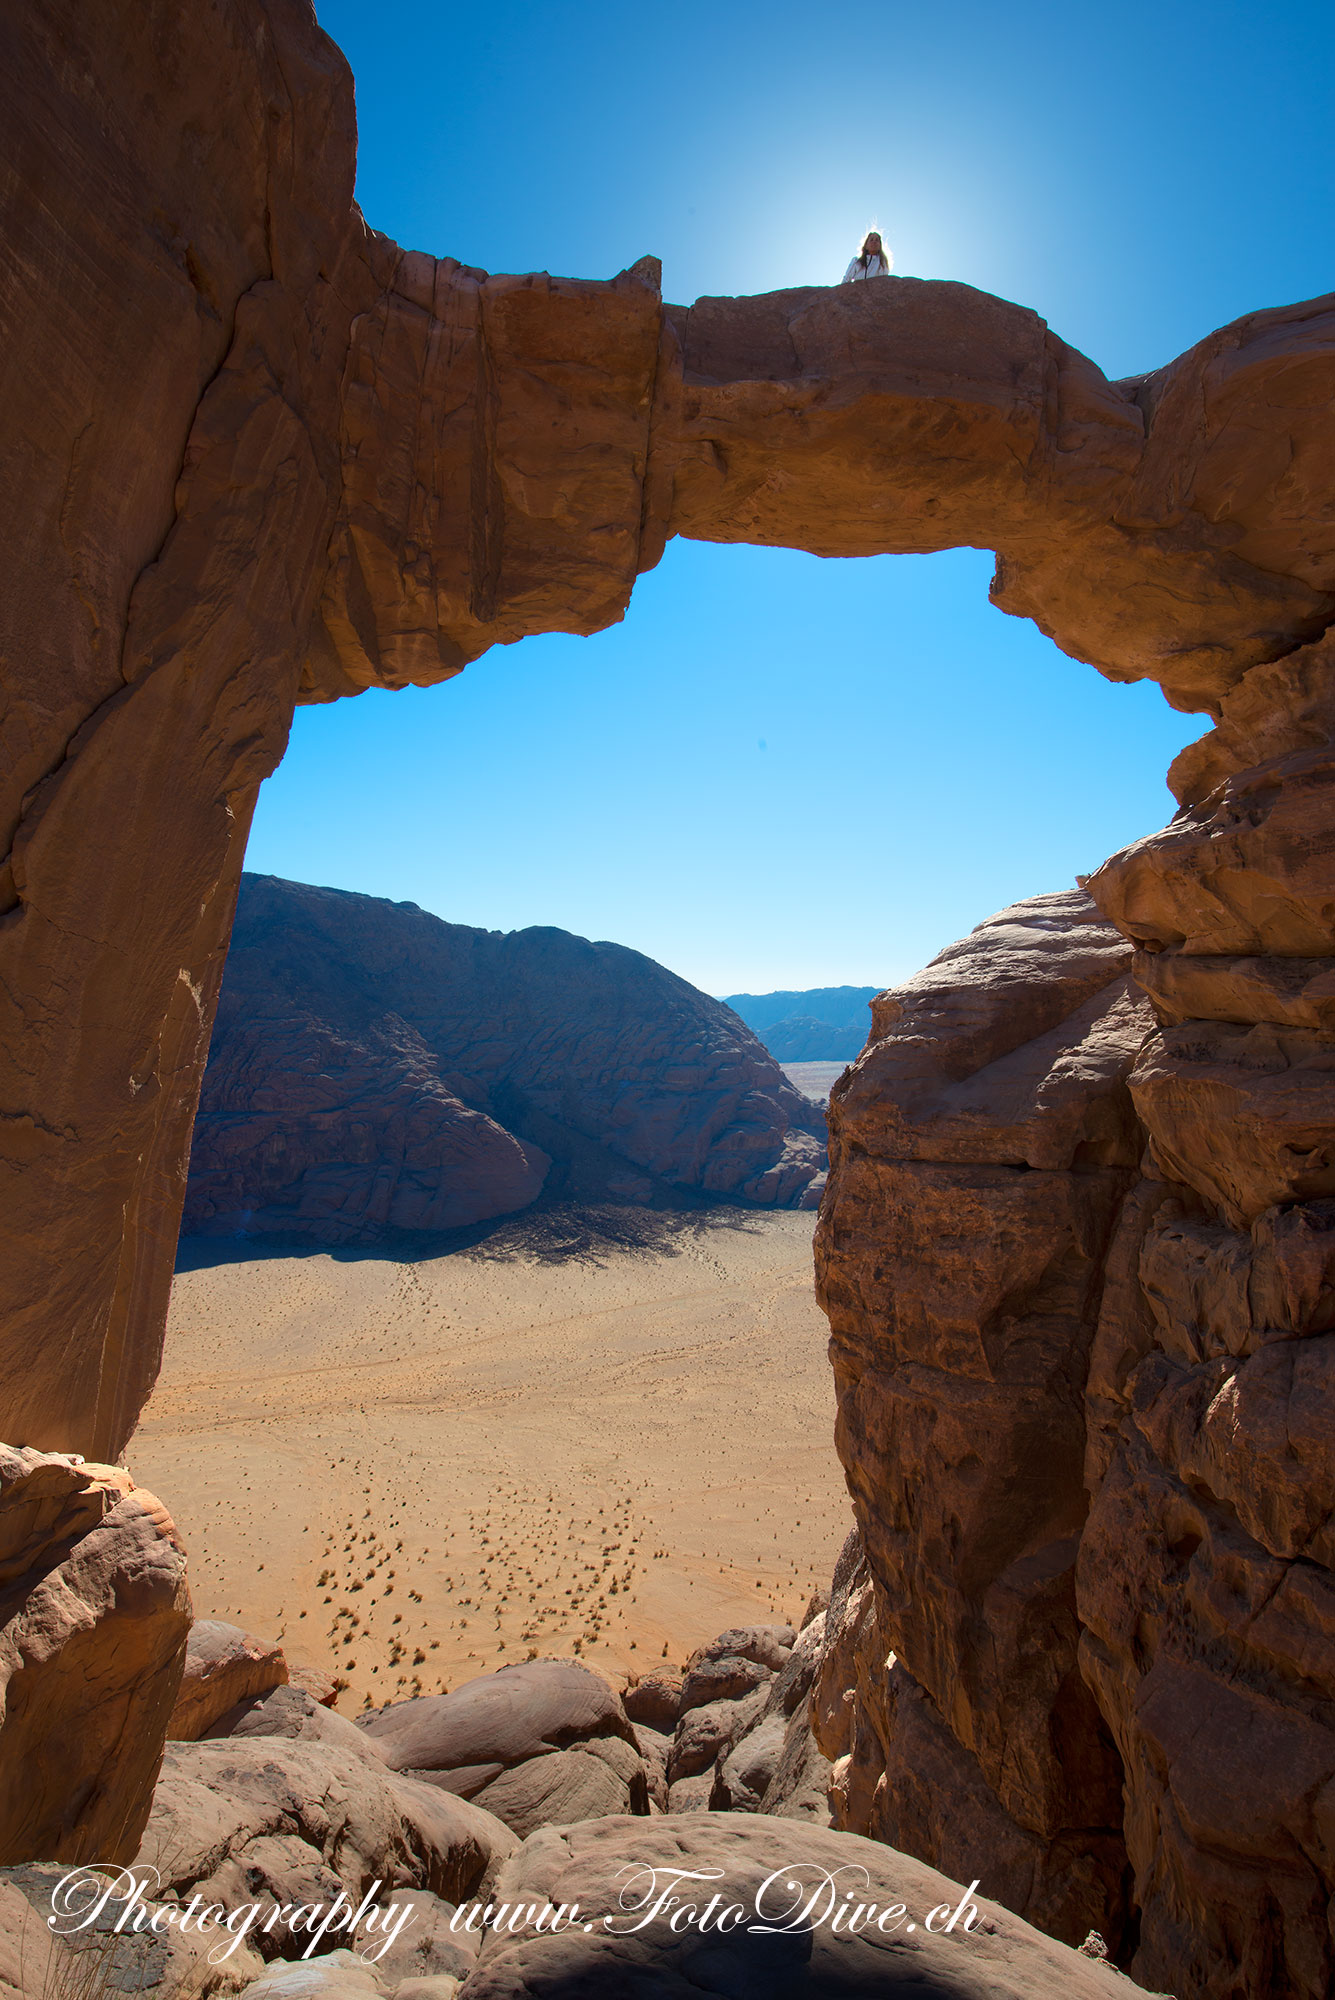 Impressive Jebel Burda Stone Bridge at Wadi Rum